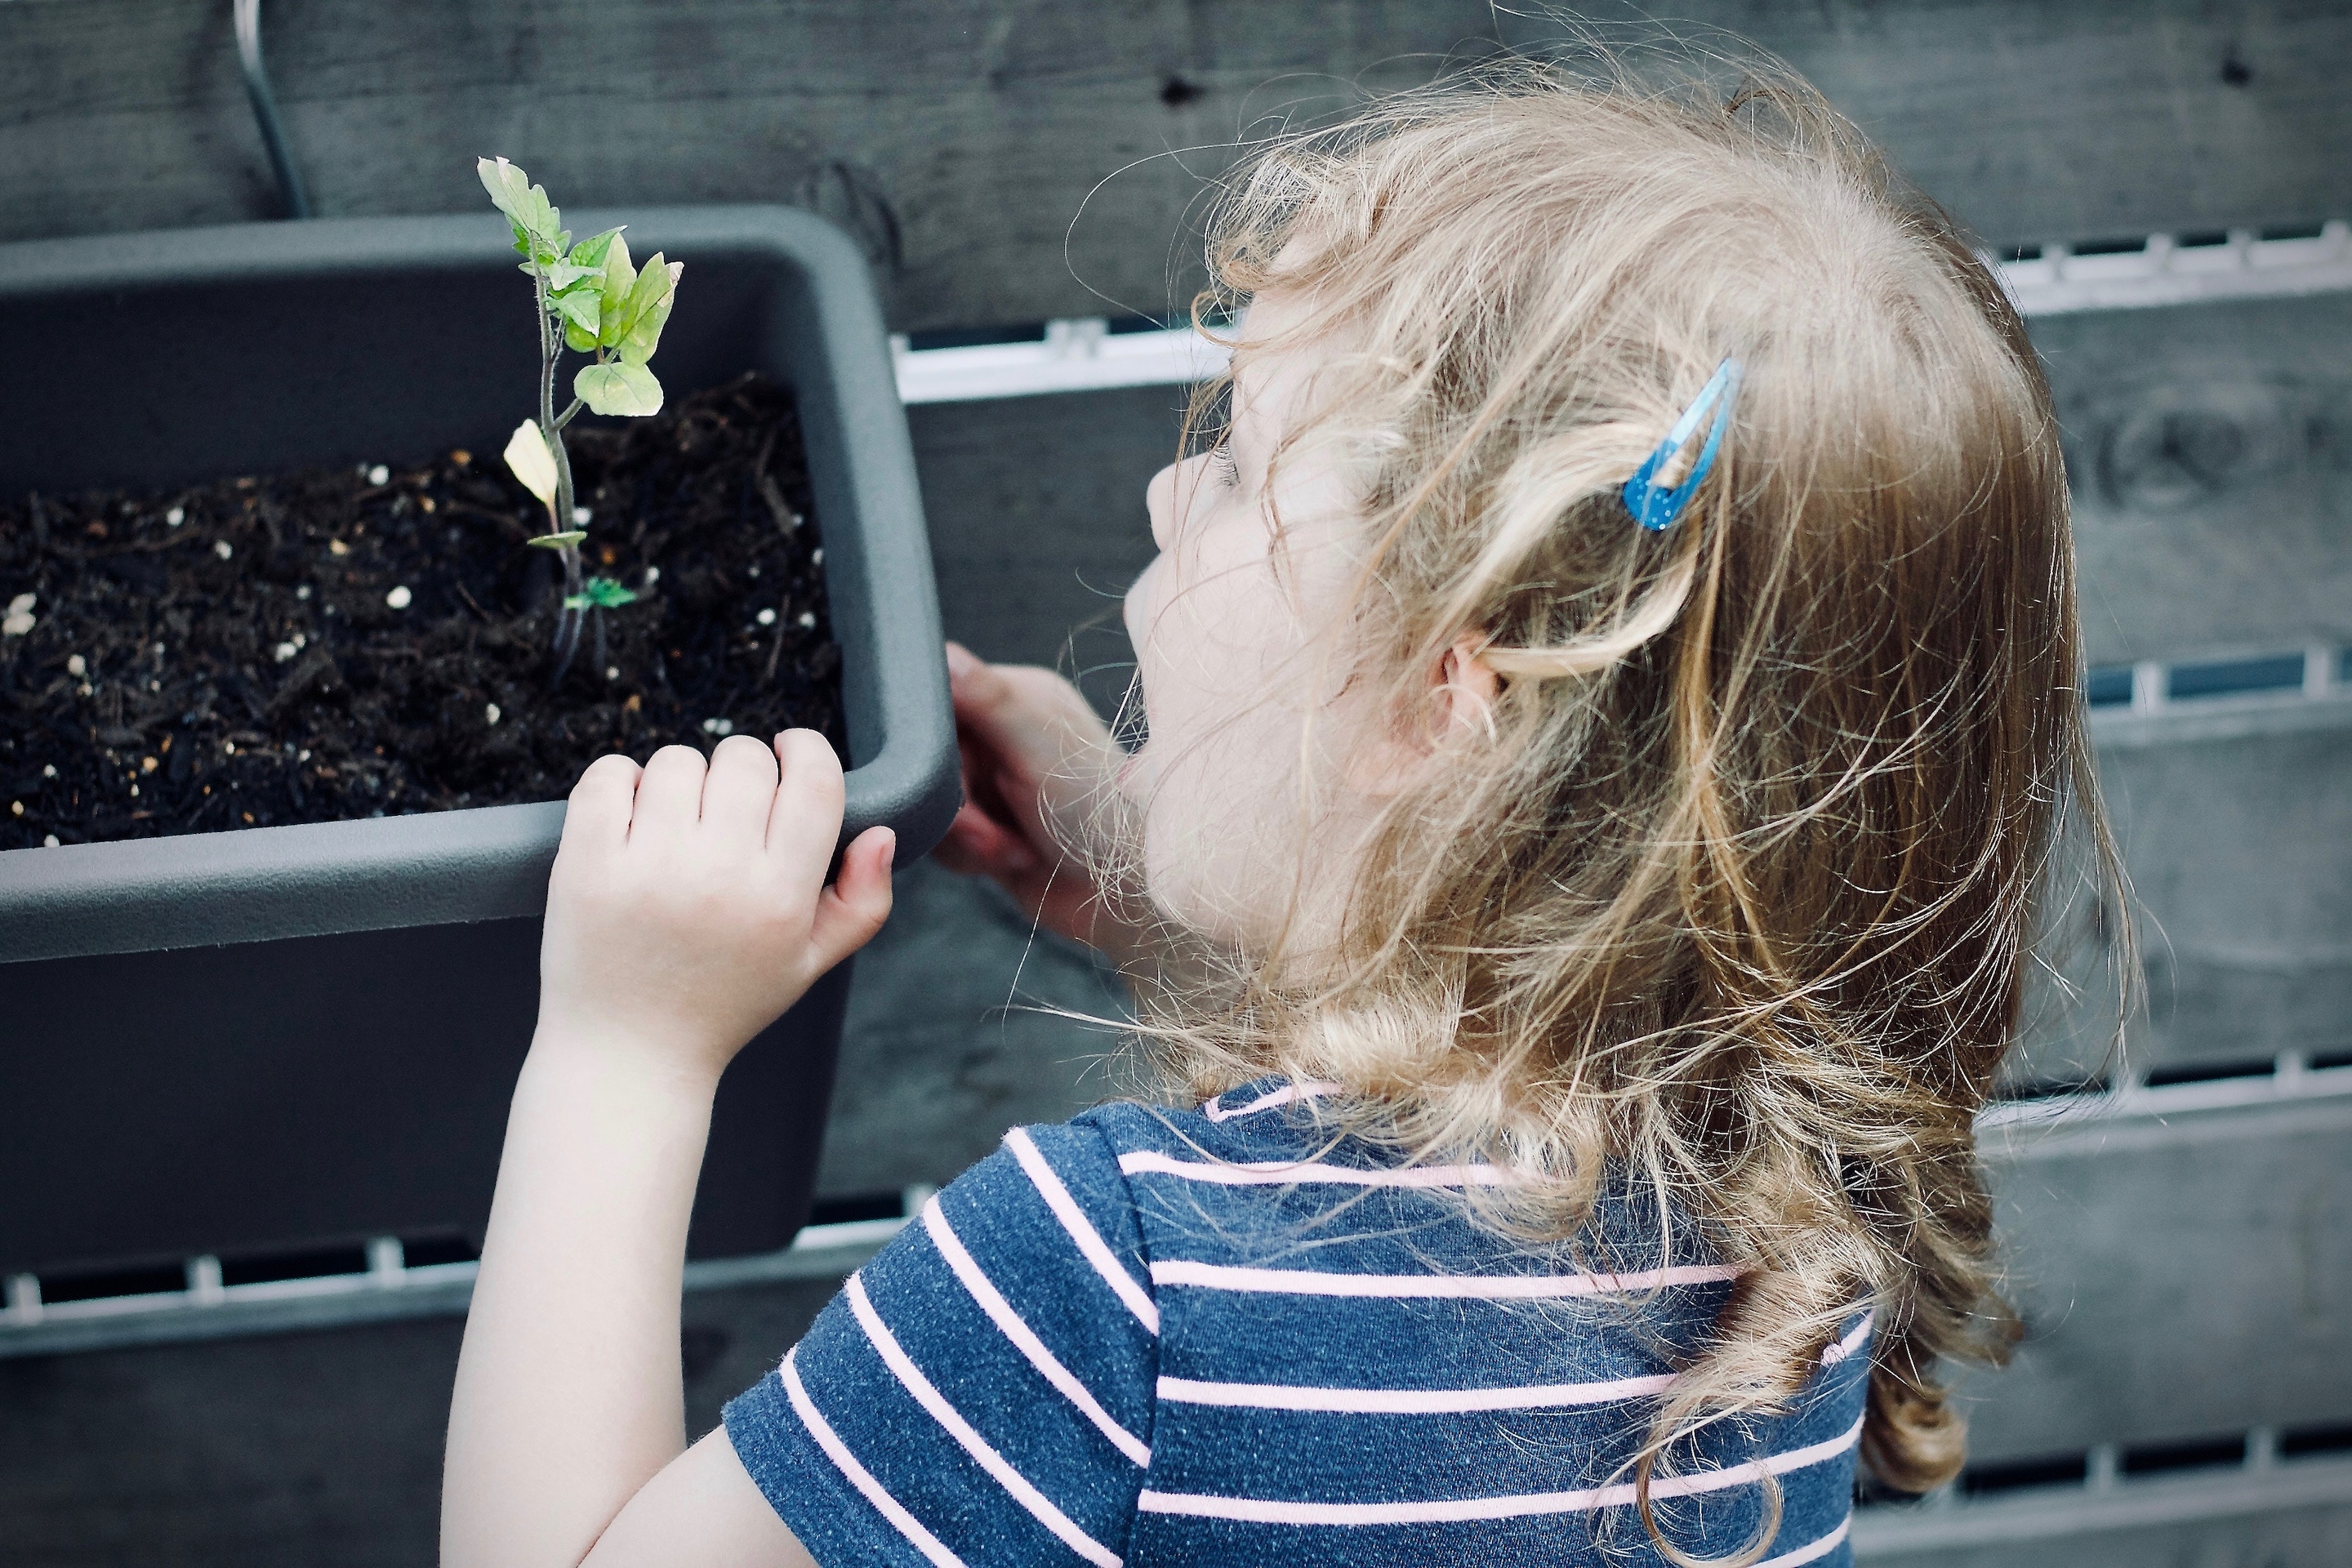 A little girl looks at a sprouting plant.